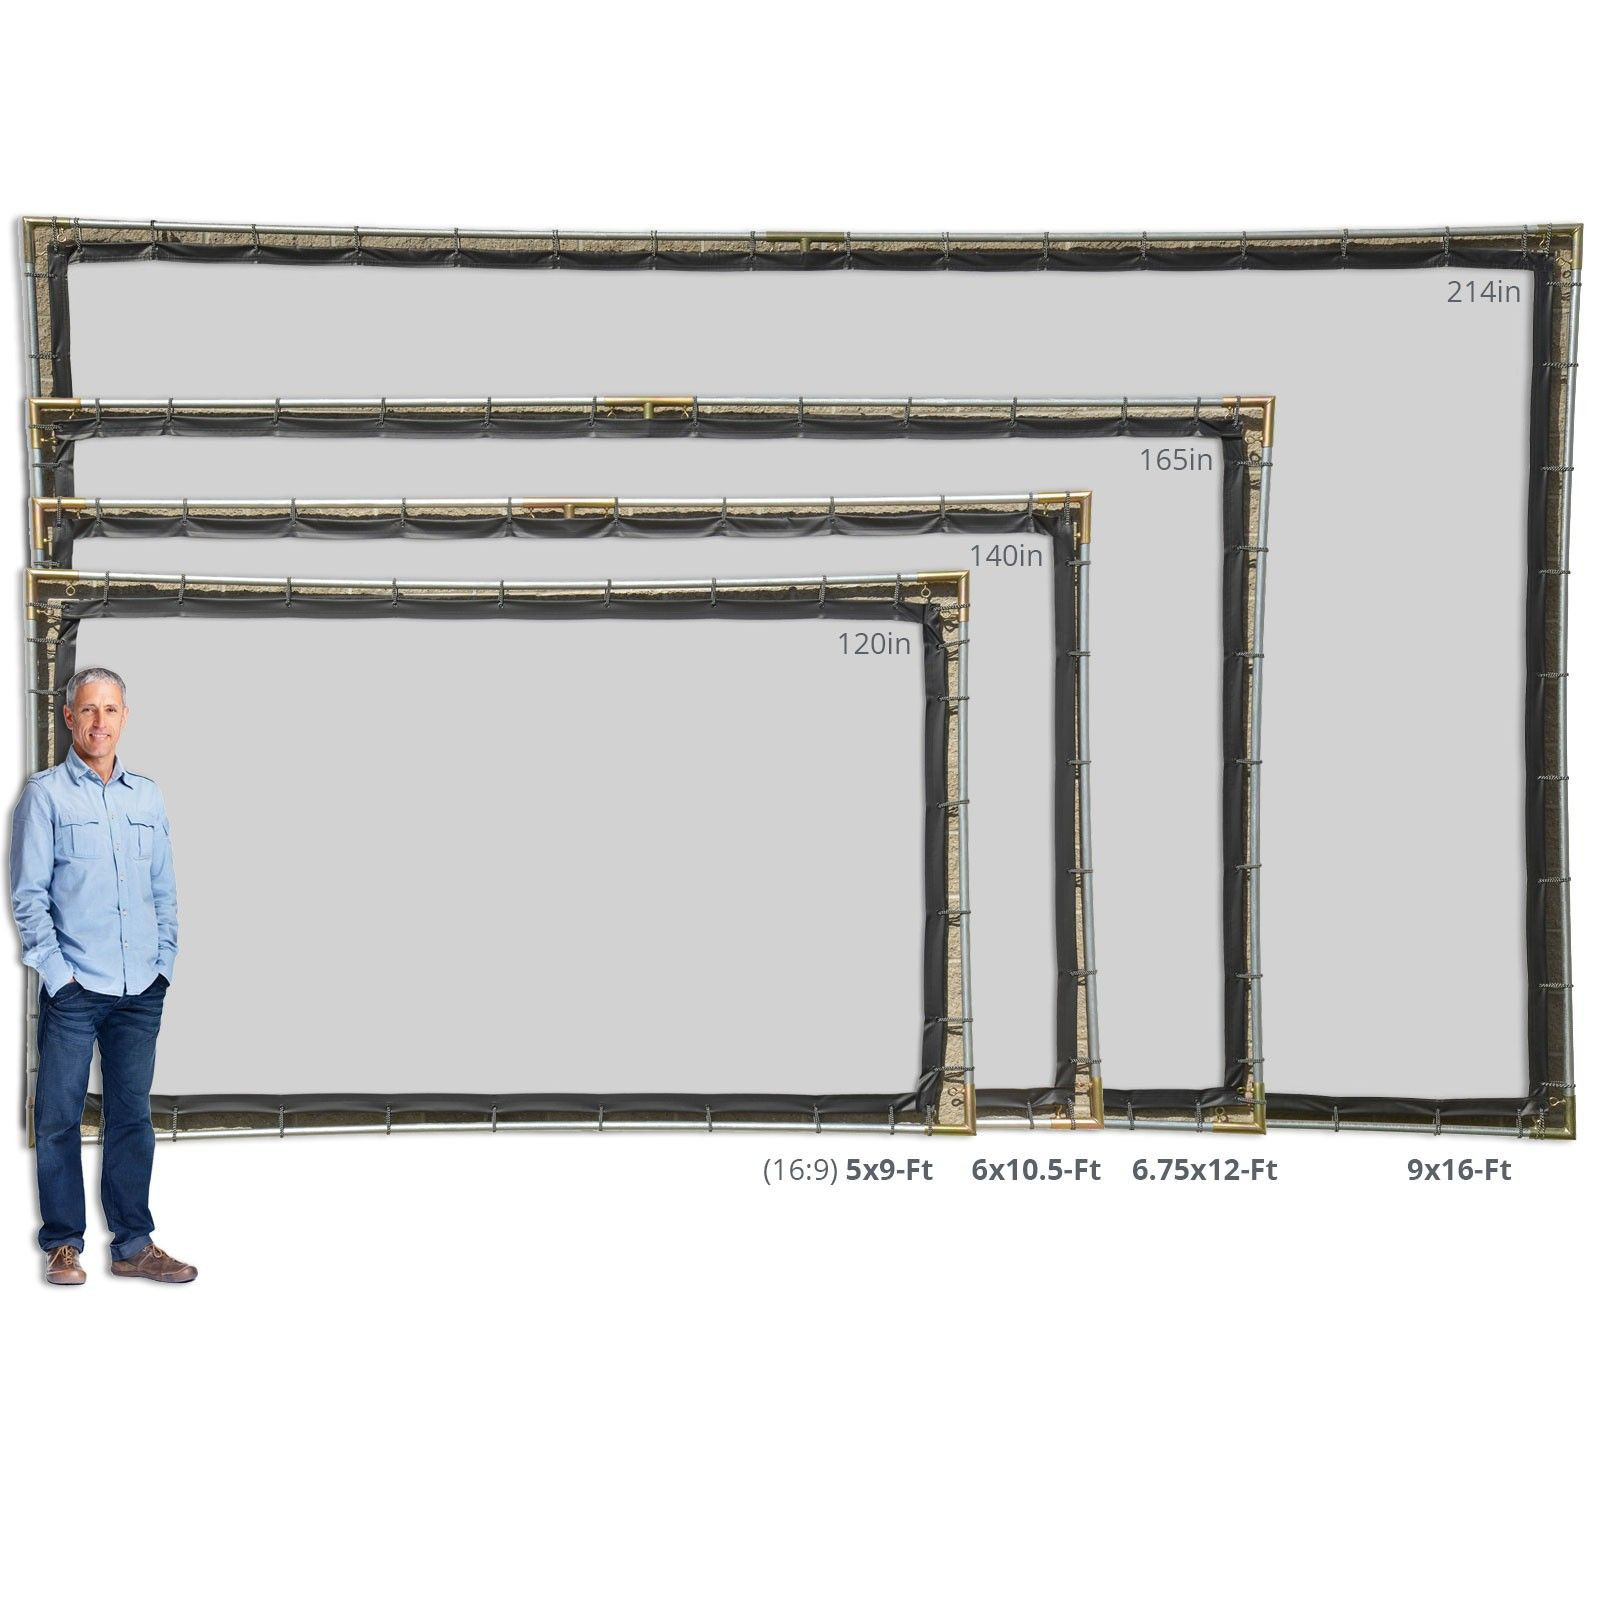 DIY Outdoor Movie Screen Material  Hanging Projector Screen Kits